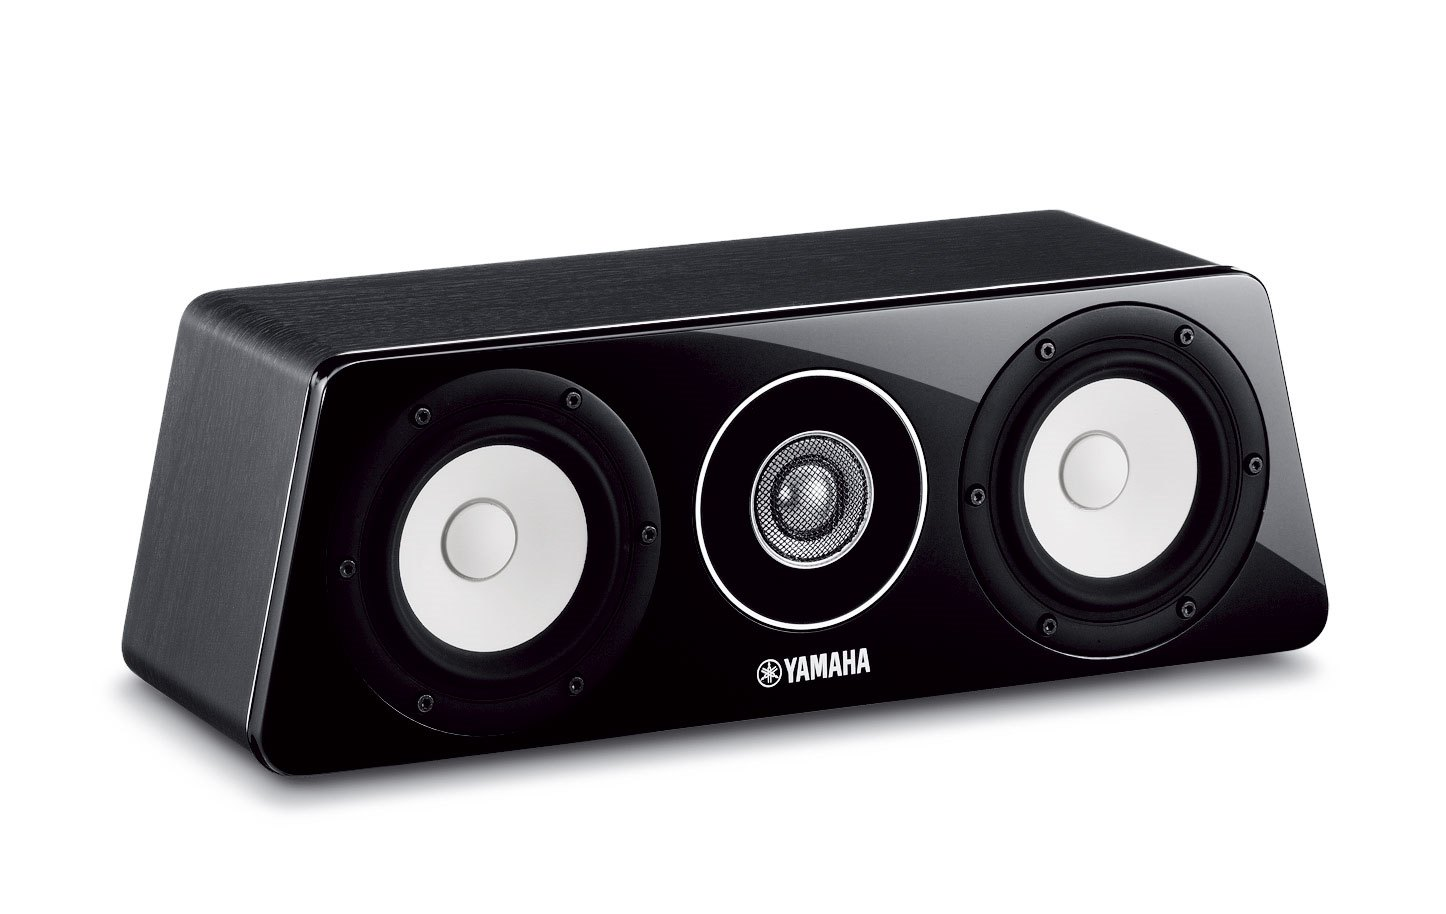 Ns c500 overview speaker systems audio visual for Yamaha speakers system